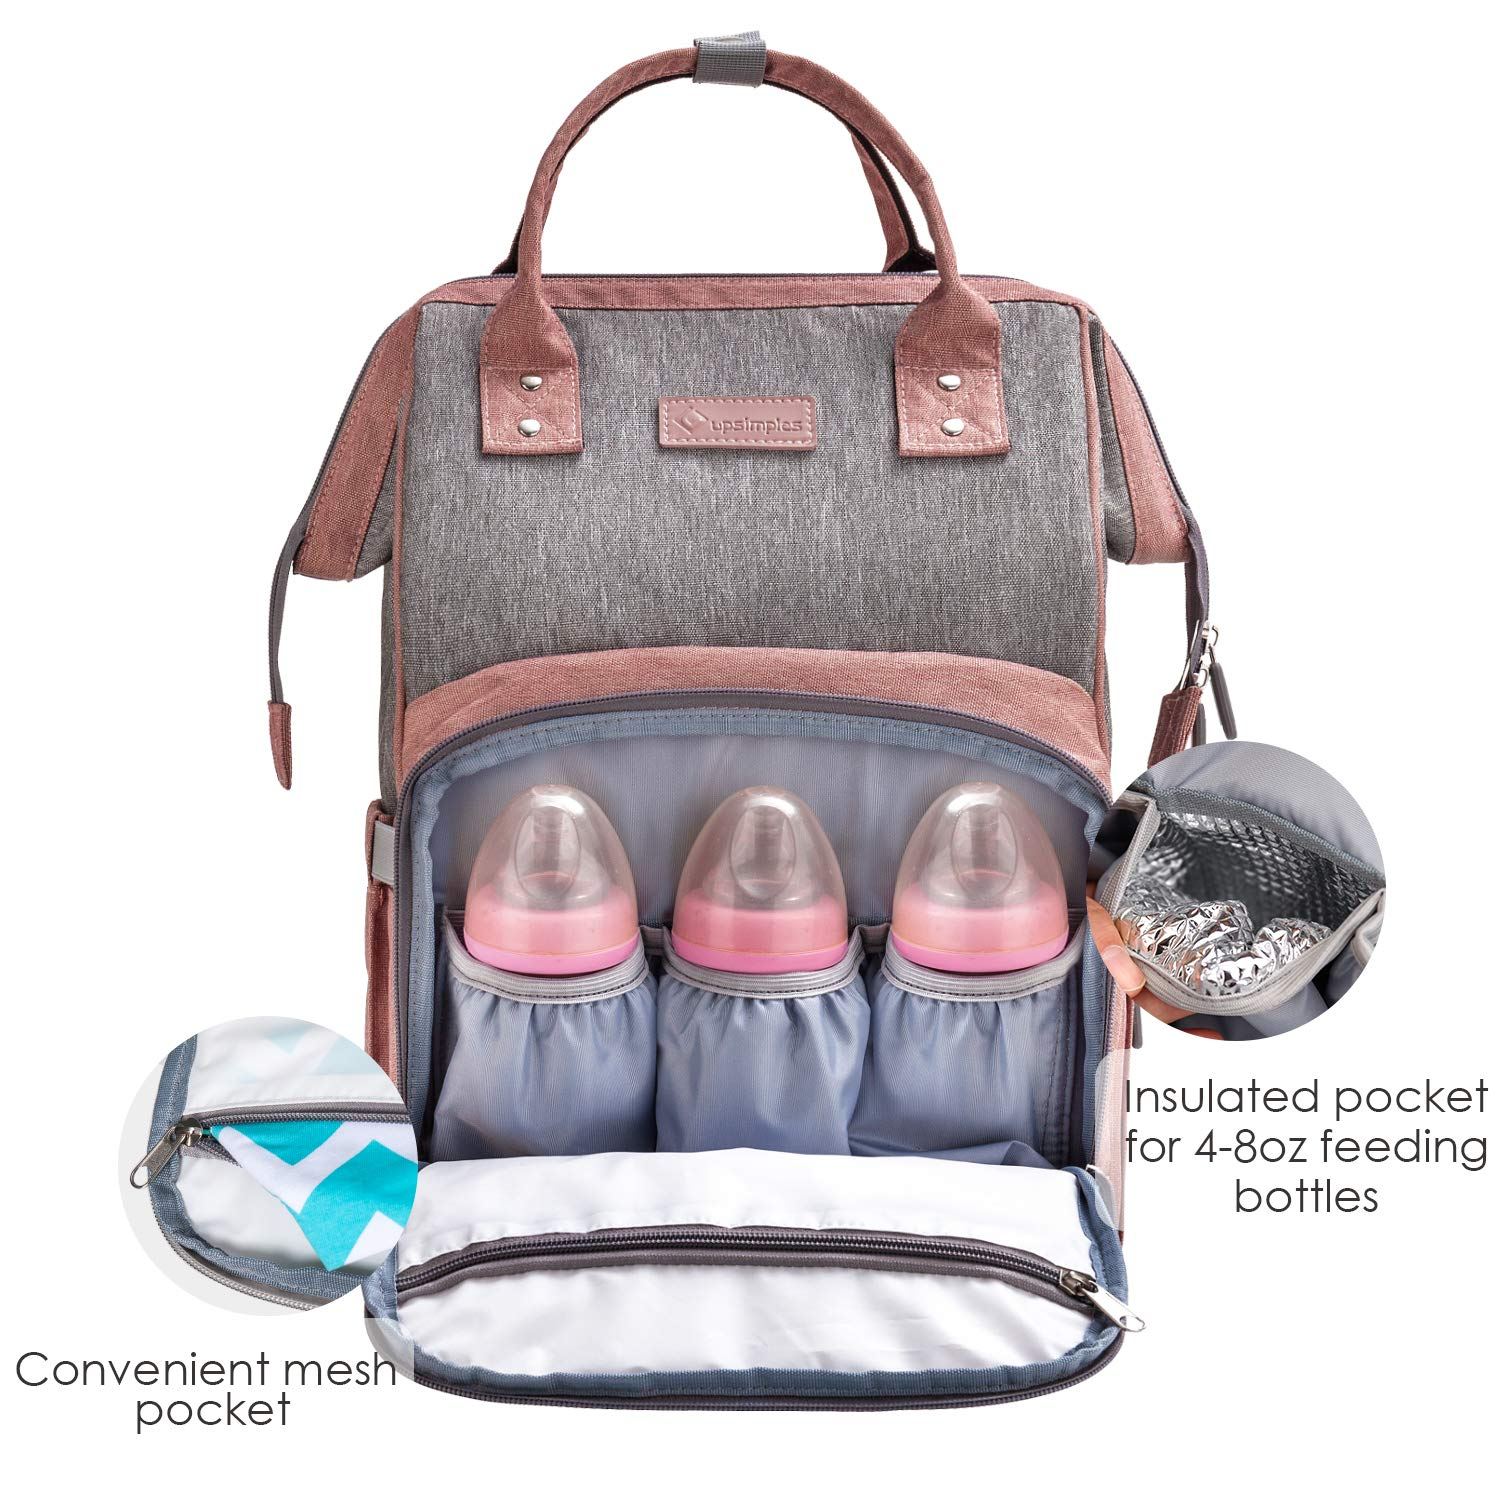 Diaper Bag Backpack Nappy Bag Upsimples Baby Bags for Mom Maternity Diaper Bag with USB Charging Port Stroller Straps Thermal Pockets Wide Shoulder Straps Water Resistant  Pink by upsimples (Image #3)